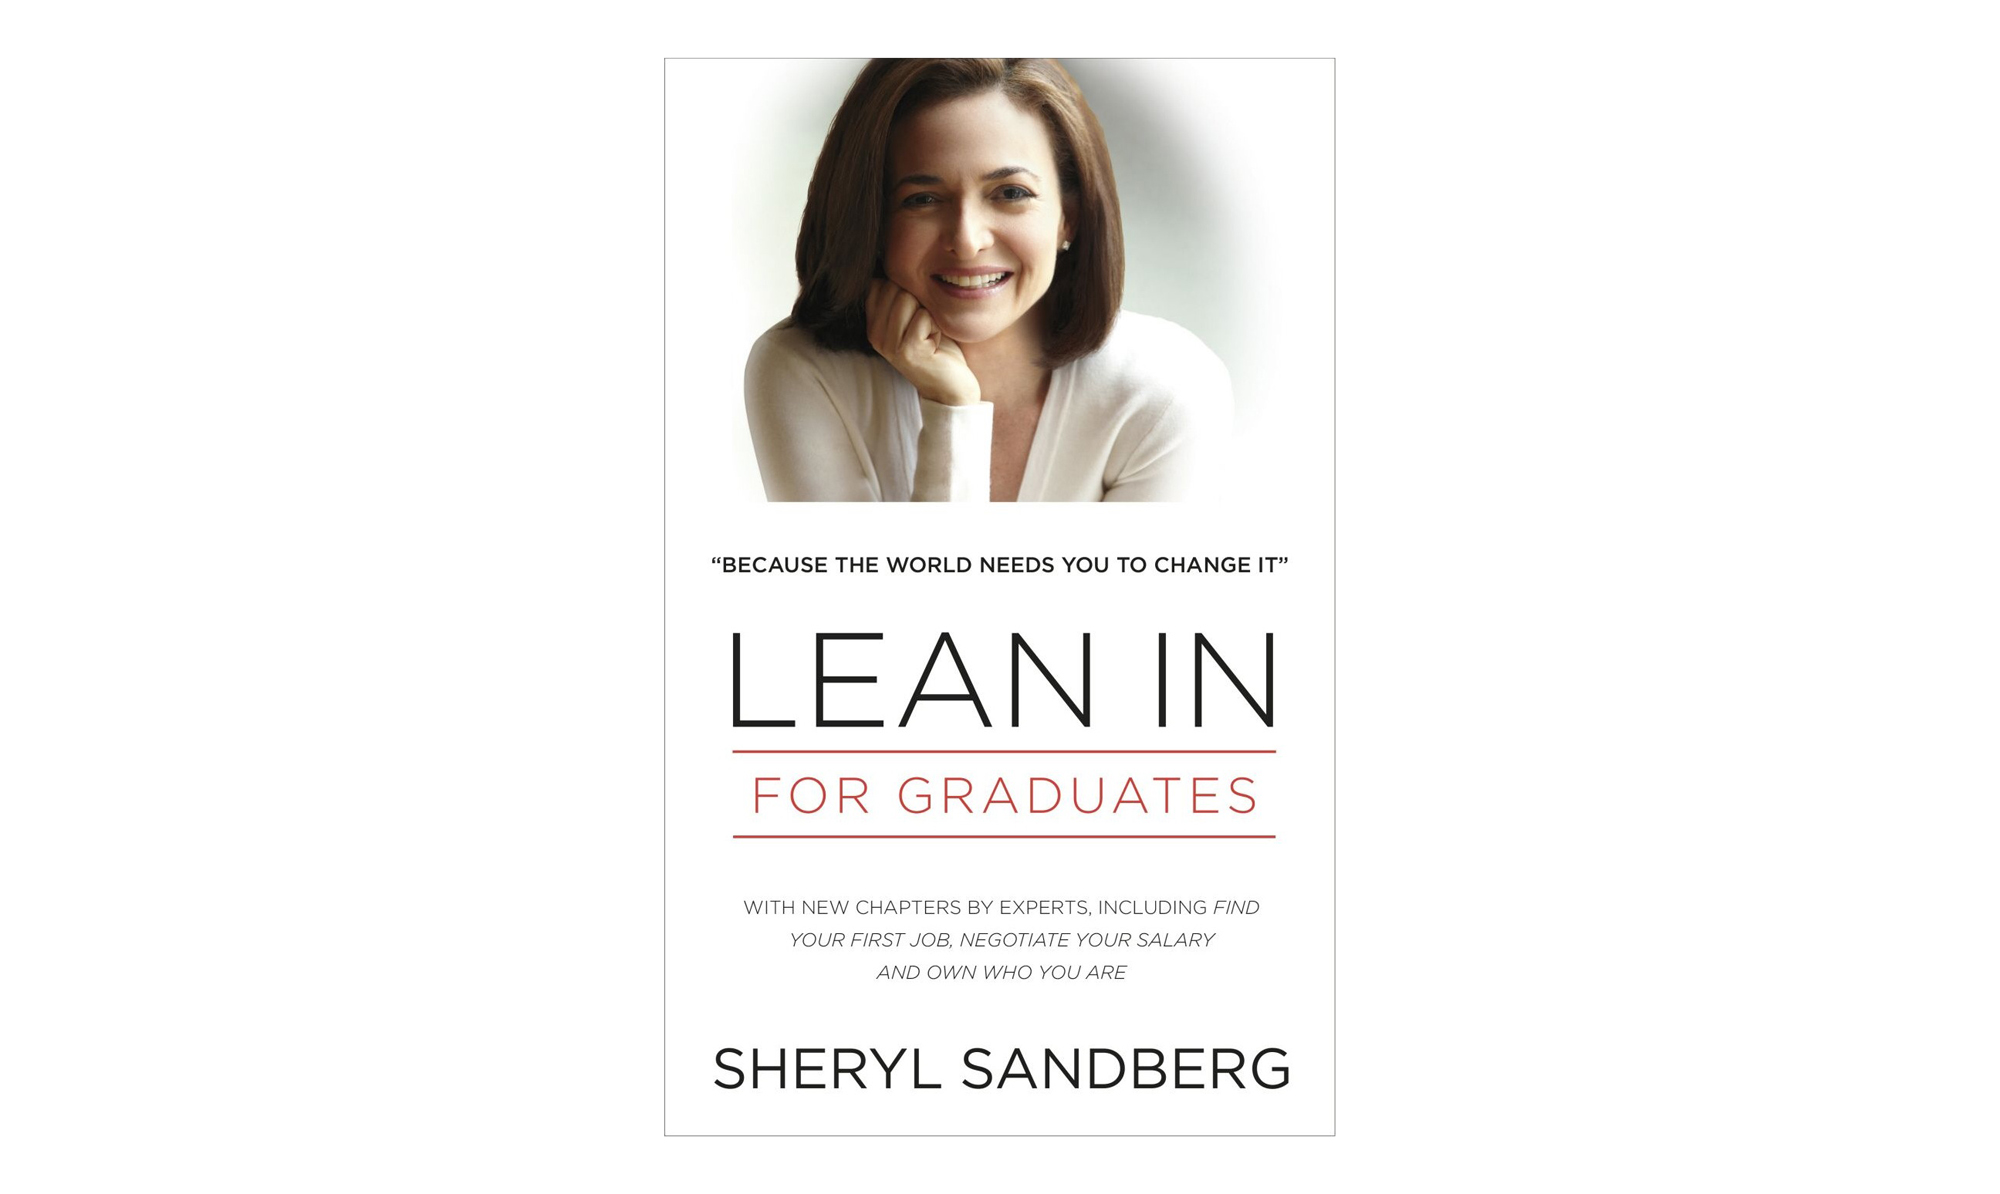 Lean In for Graduates, by Sheryl Sandberg